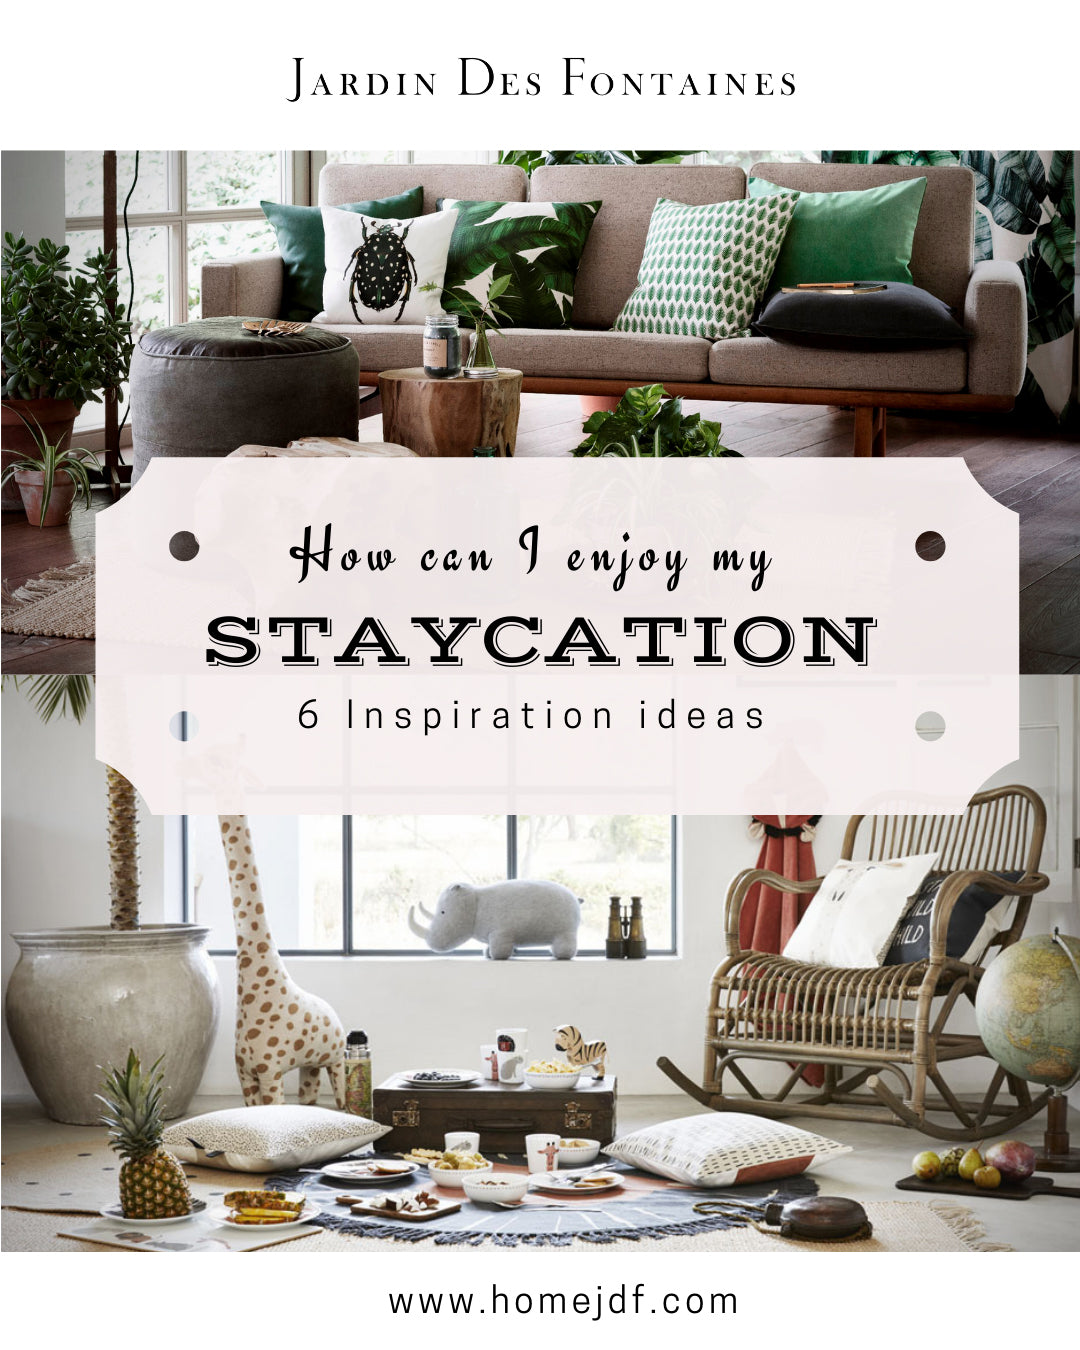 6 Inspiration Ideas for your staycation